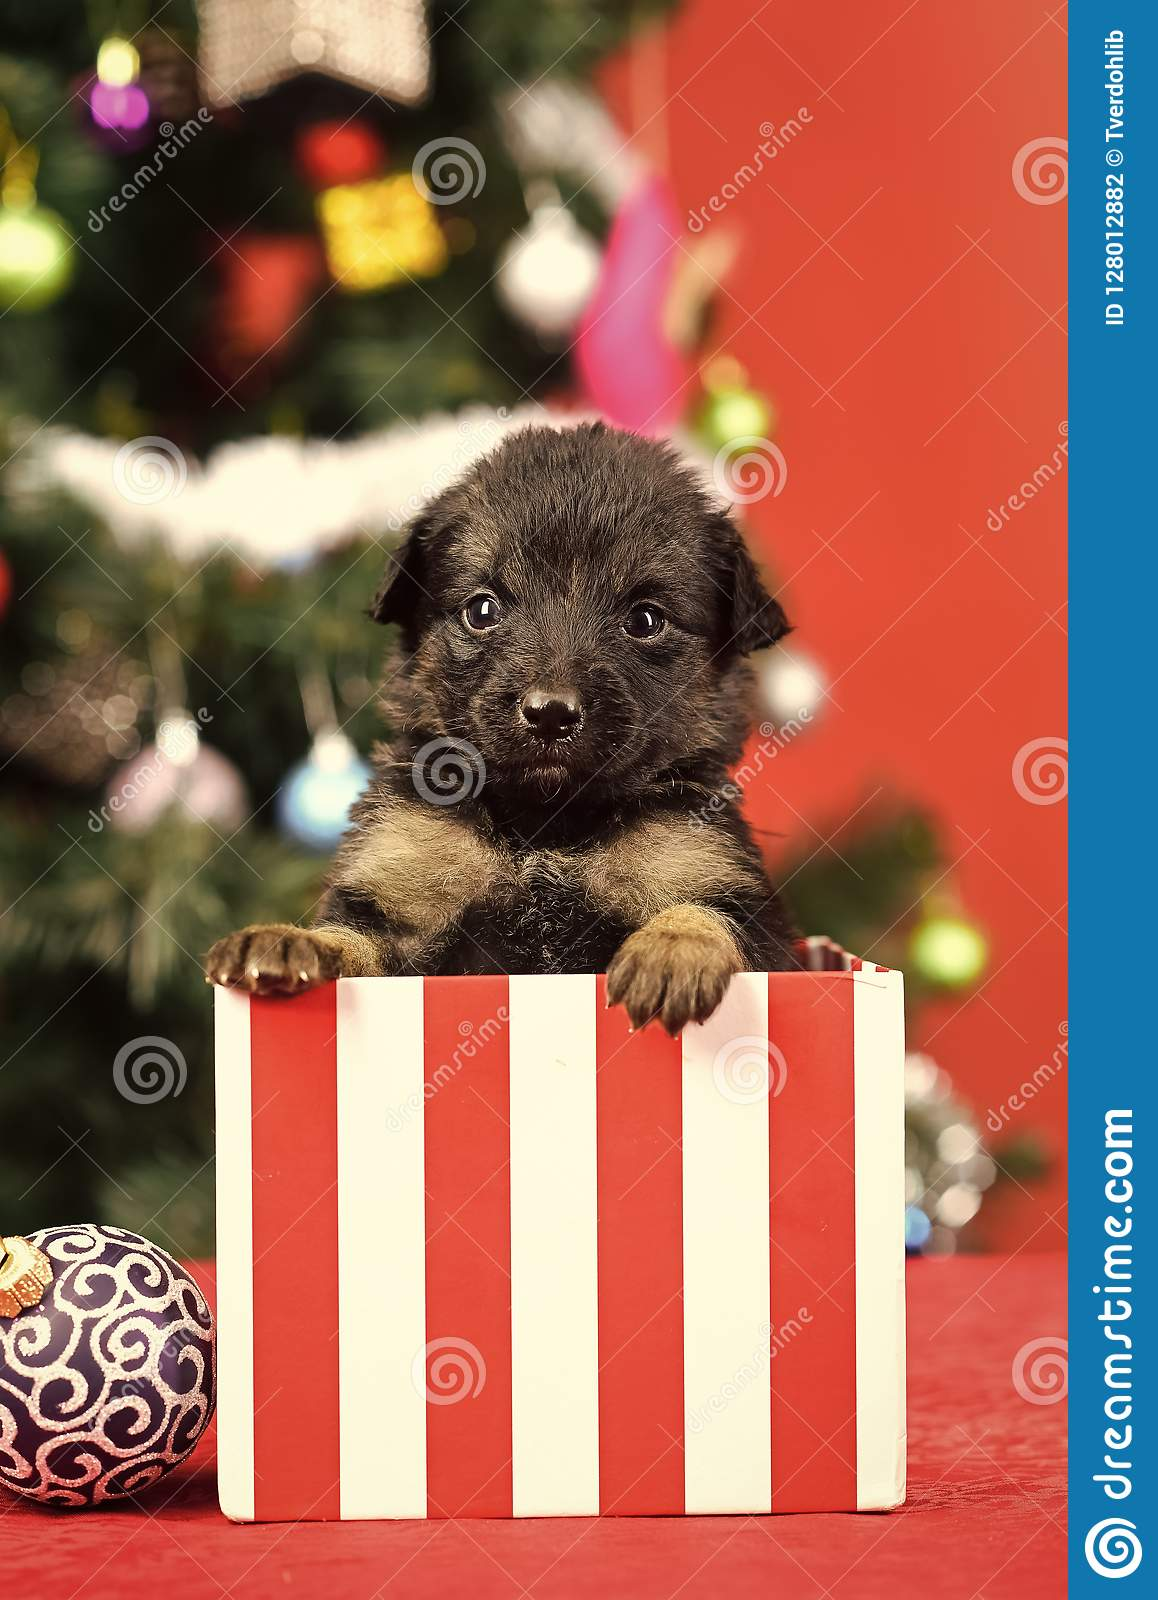 New Year Of Dog Puppy In Present Christmas Box Stock Photo Image Of Color Christmas 128012882